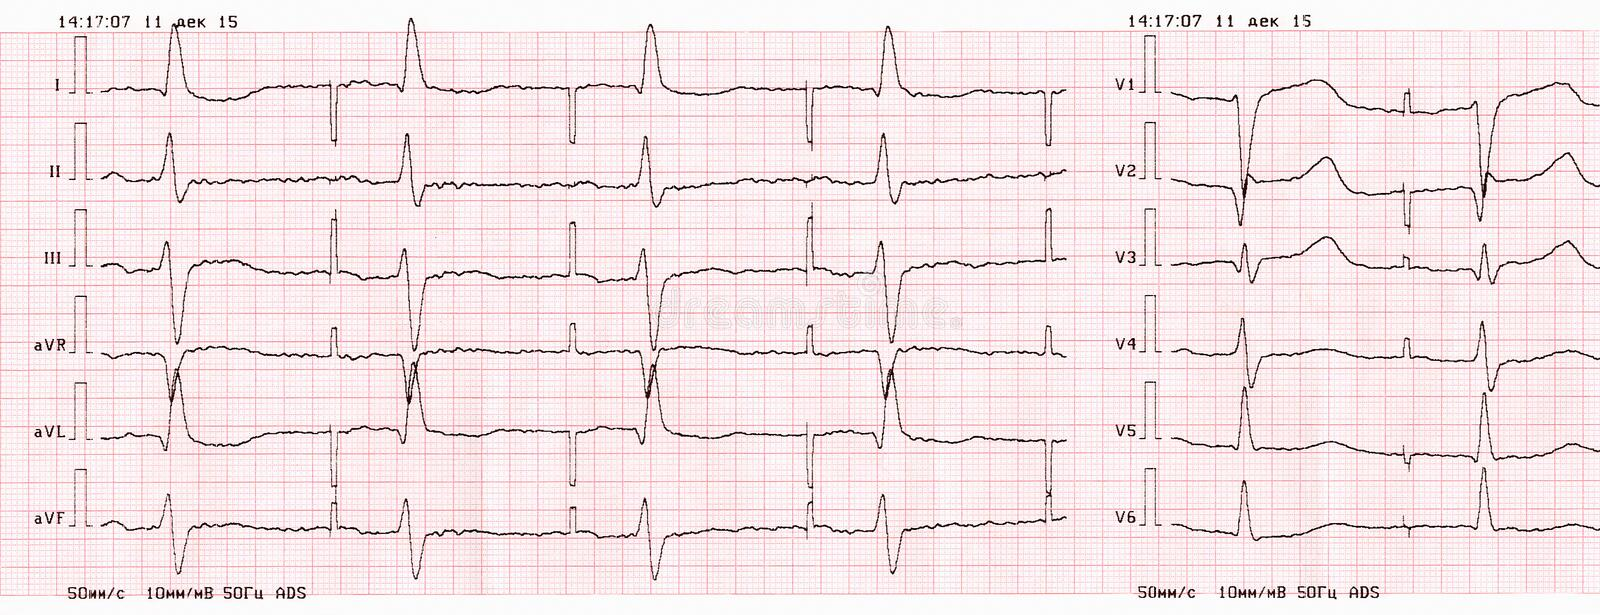 Tape ECG with pacemaker rhythm (atrial pacing). Tape ECG with artificial pacemaker rhythm (atrial pacing royalty free stock photo